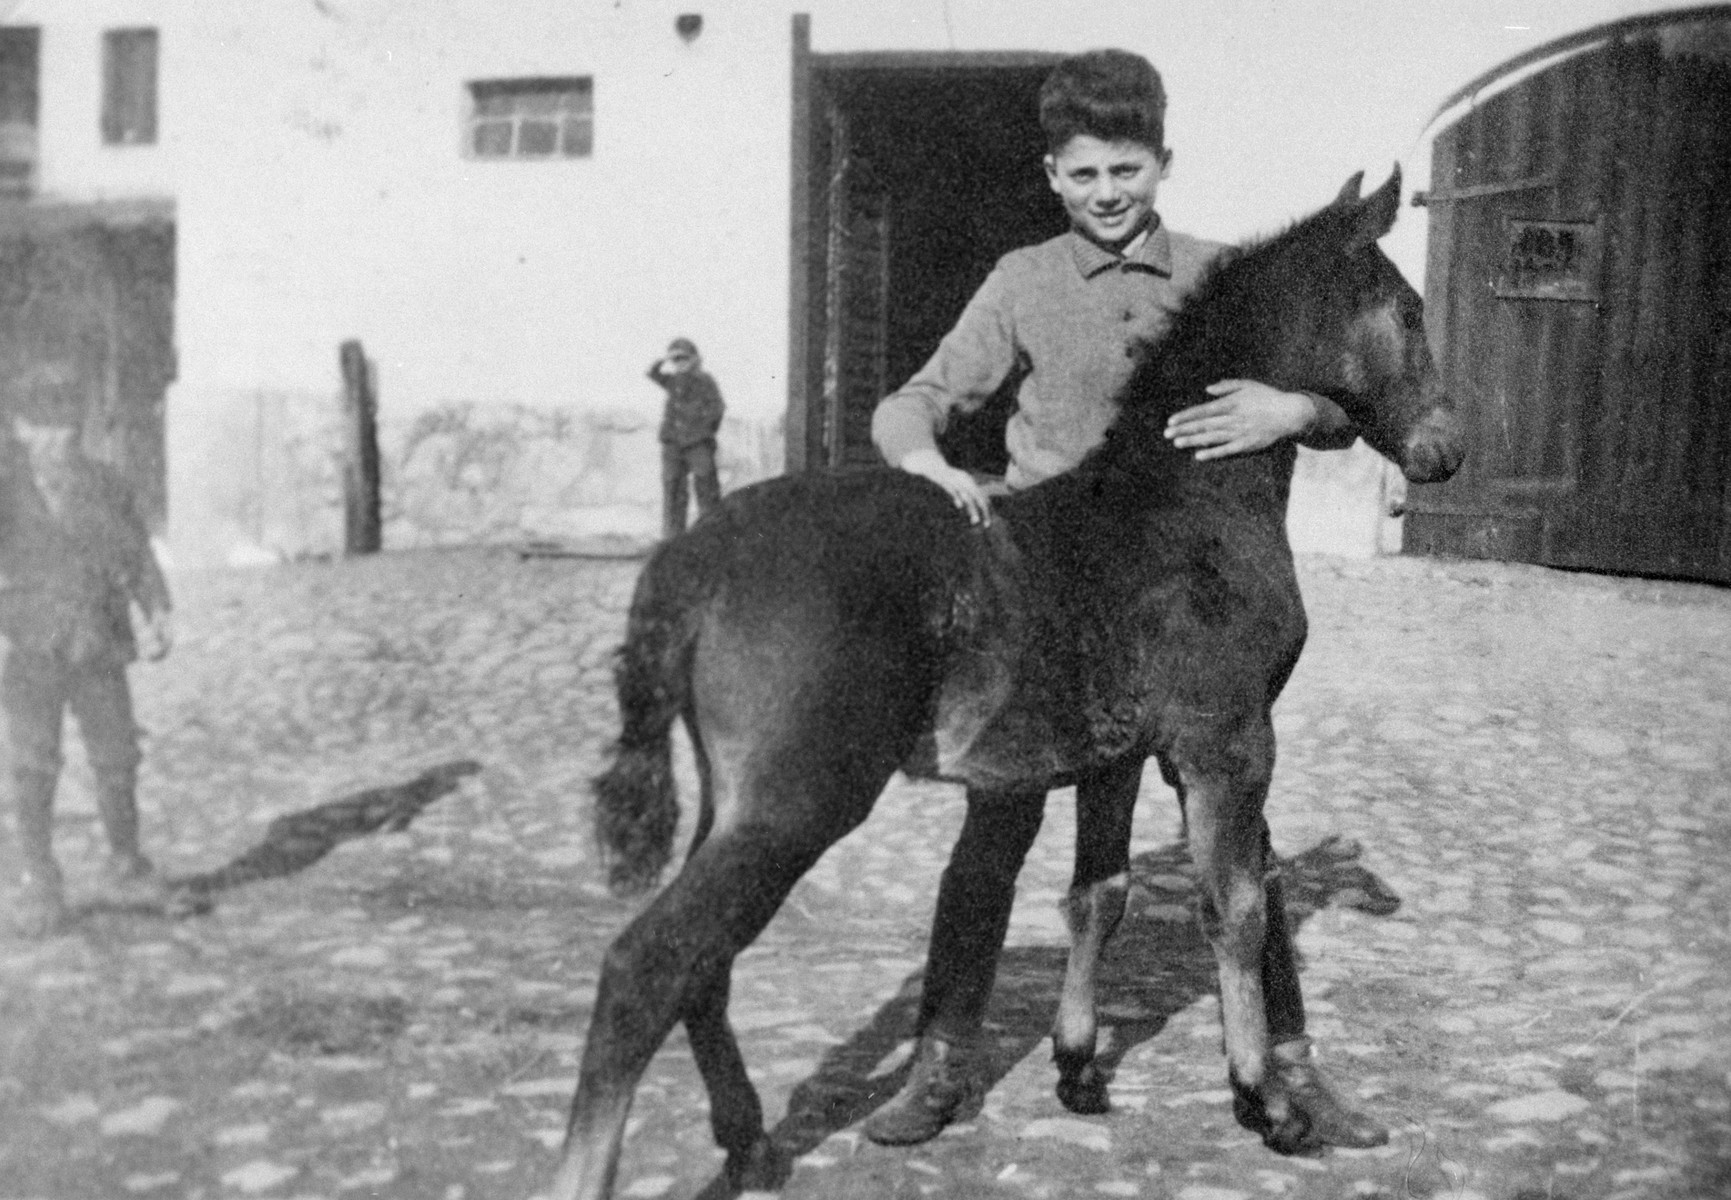 A young boy pets a foal in the Gross Breesen agricultural training center.